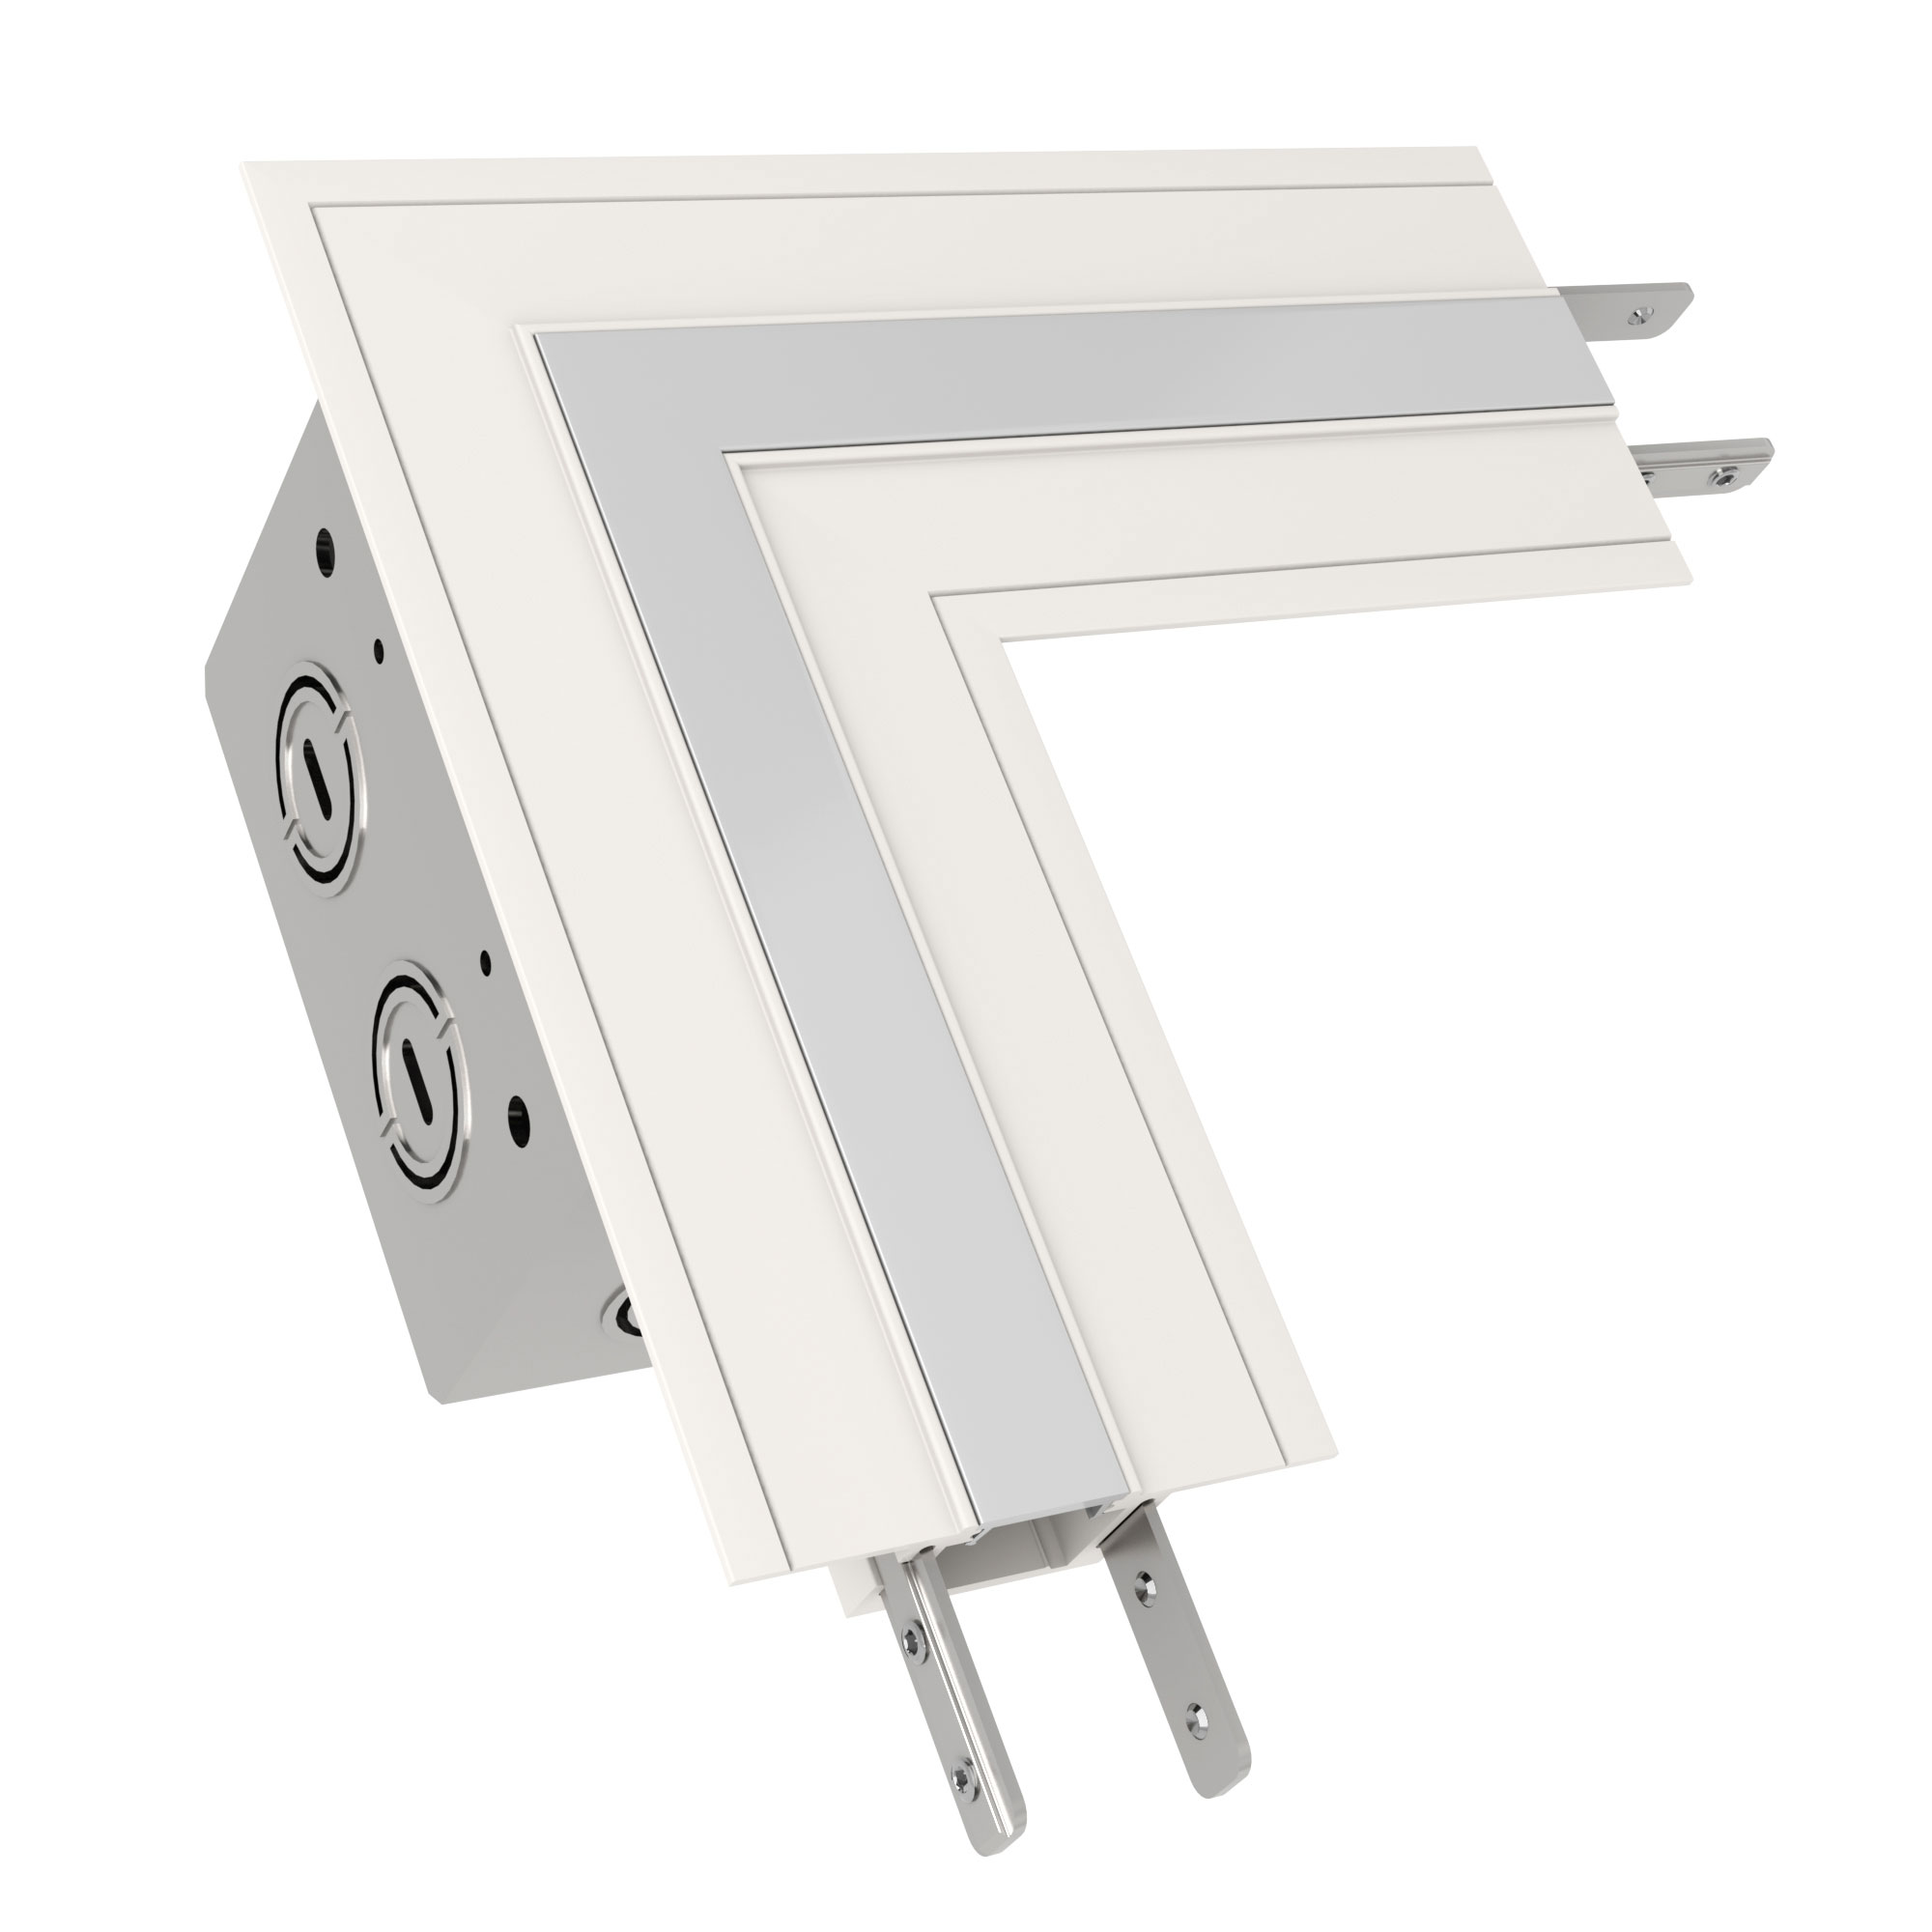 TruLine .5A L-Picture Frame Power Channel Connector by PureEdge ...